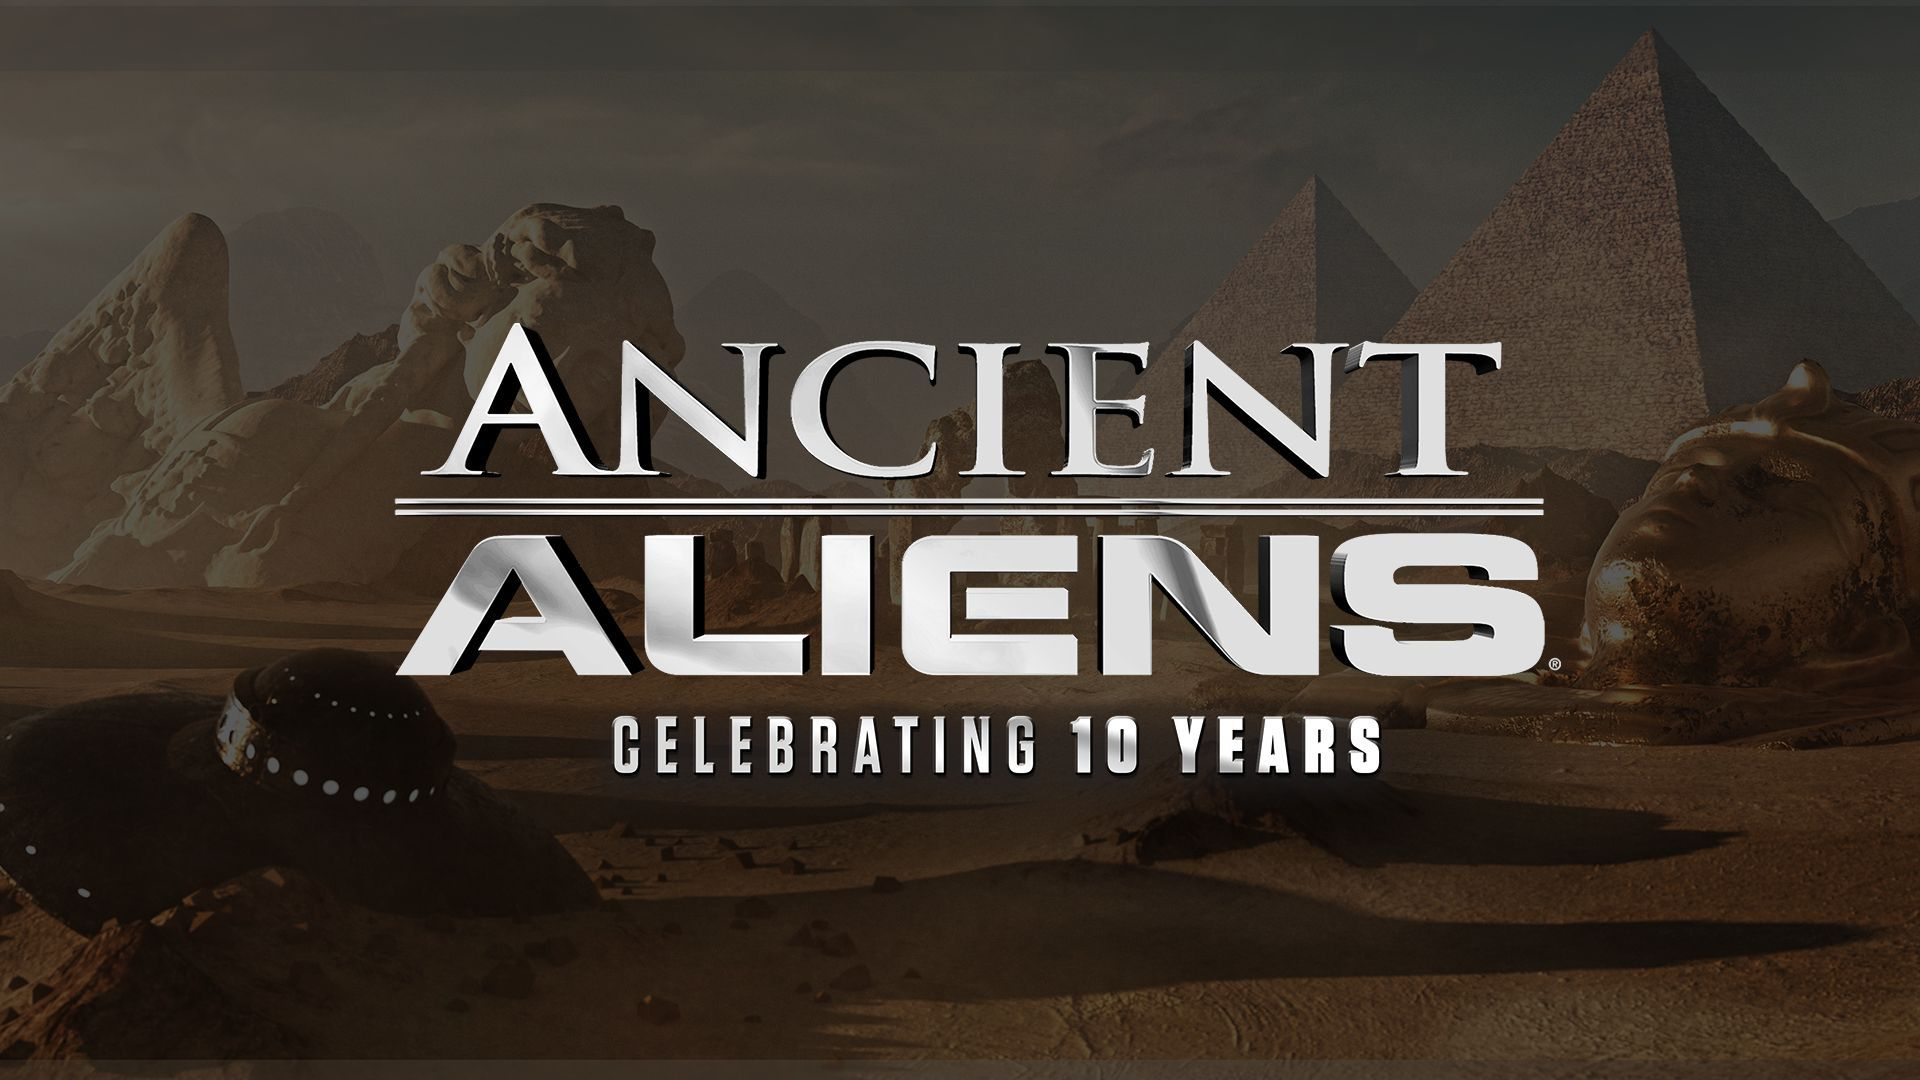 Ancient Aliens explores the controversial theory that extraterrestrials have vis